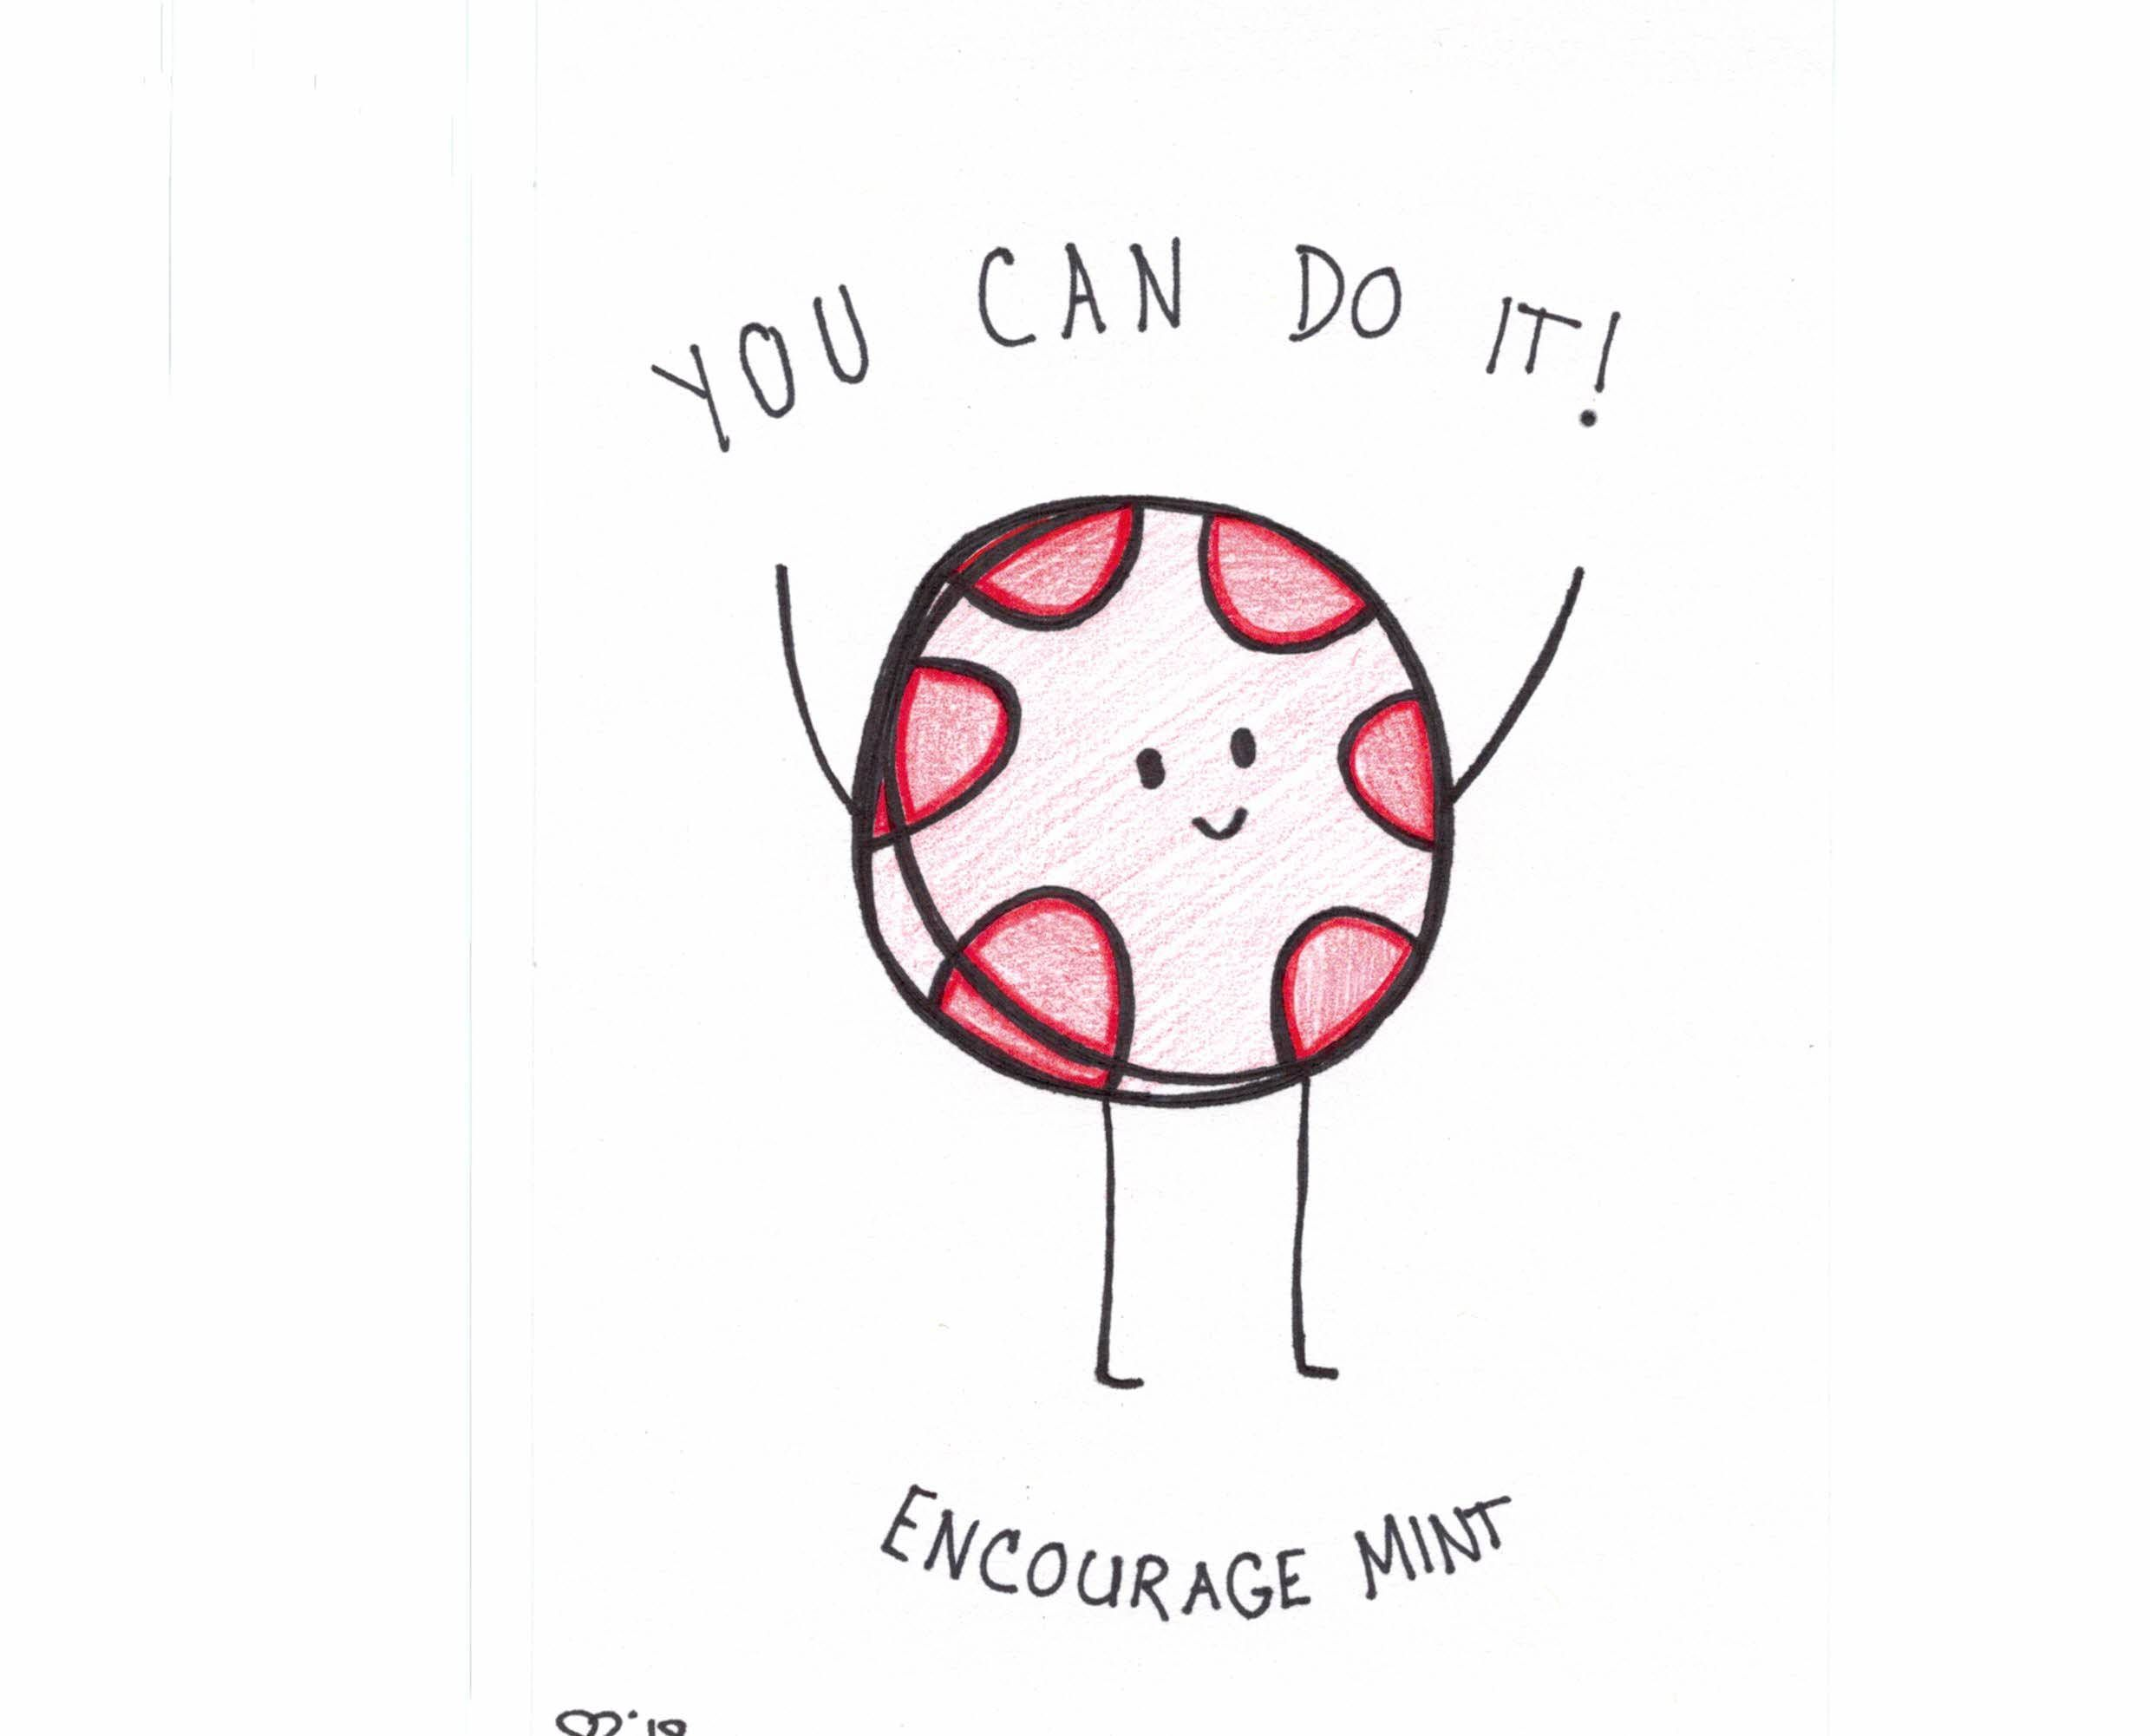 Encourage Mint Candy Cute Puns Funny Food Puns Candy